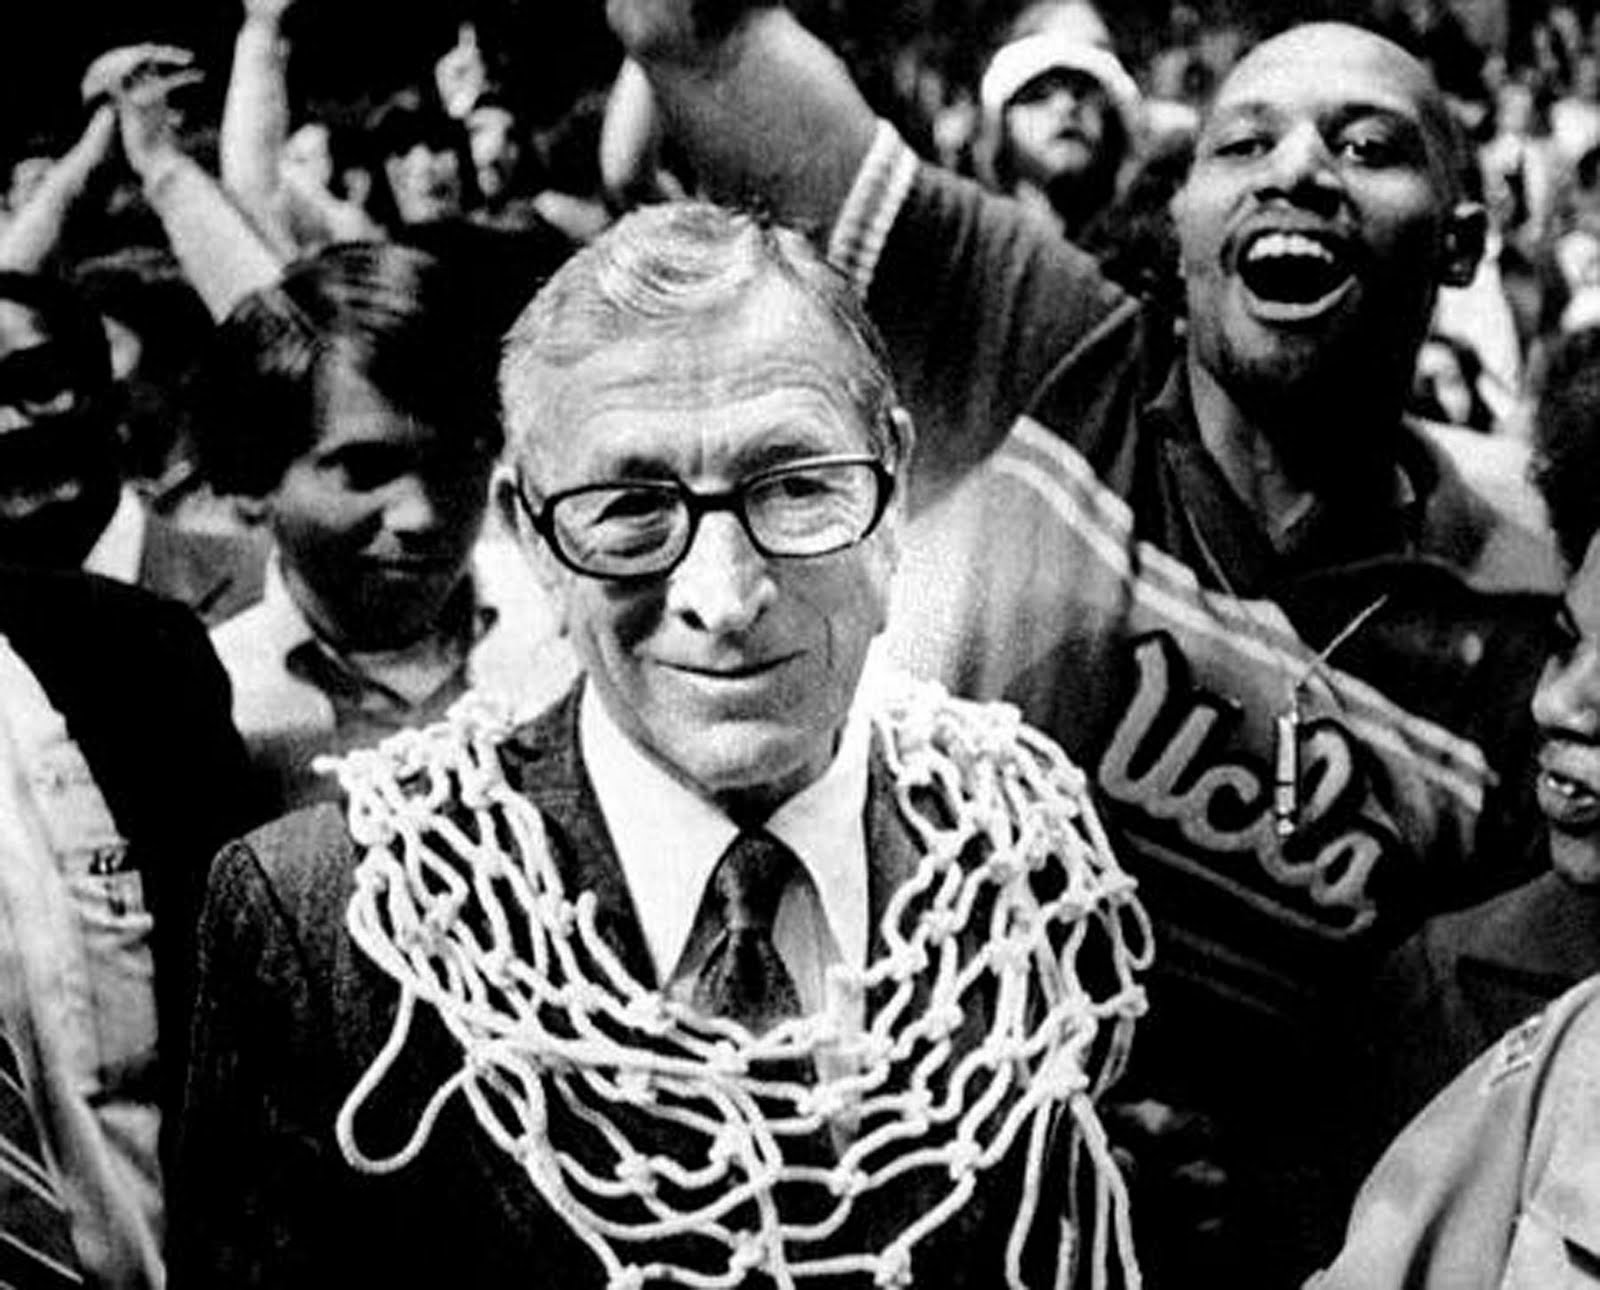 John Wooden after winning a championship